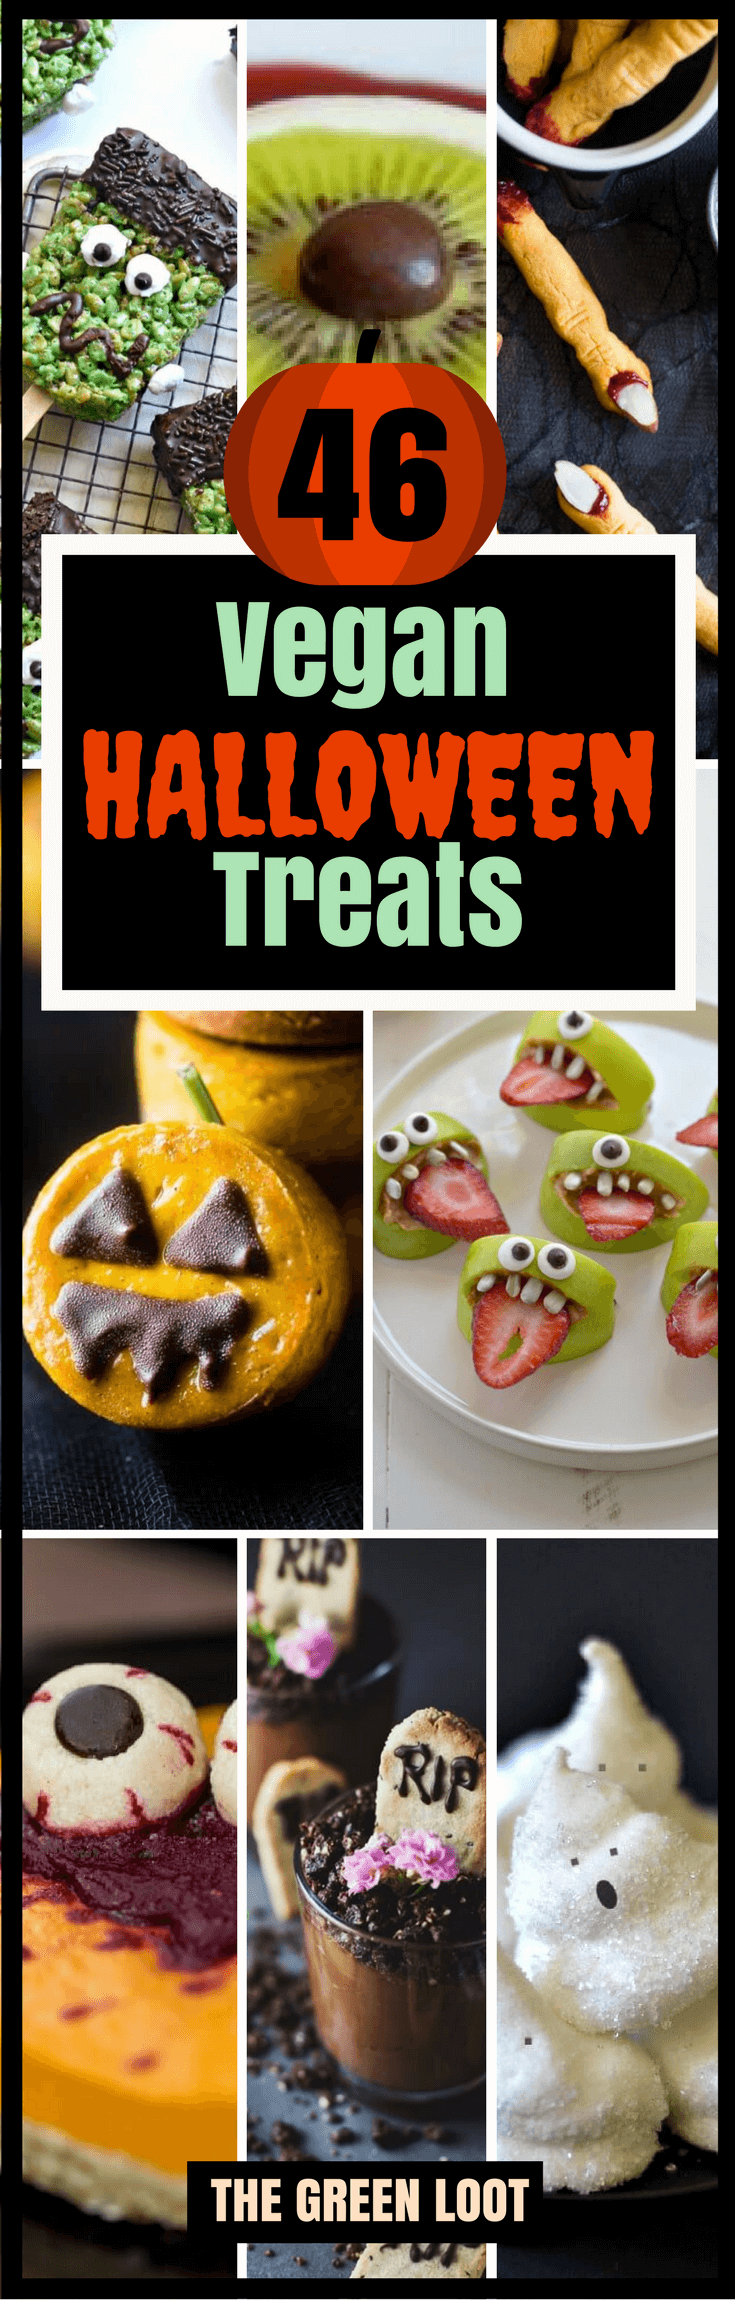 Vegan Halloween Treats, Snacks and Recipes